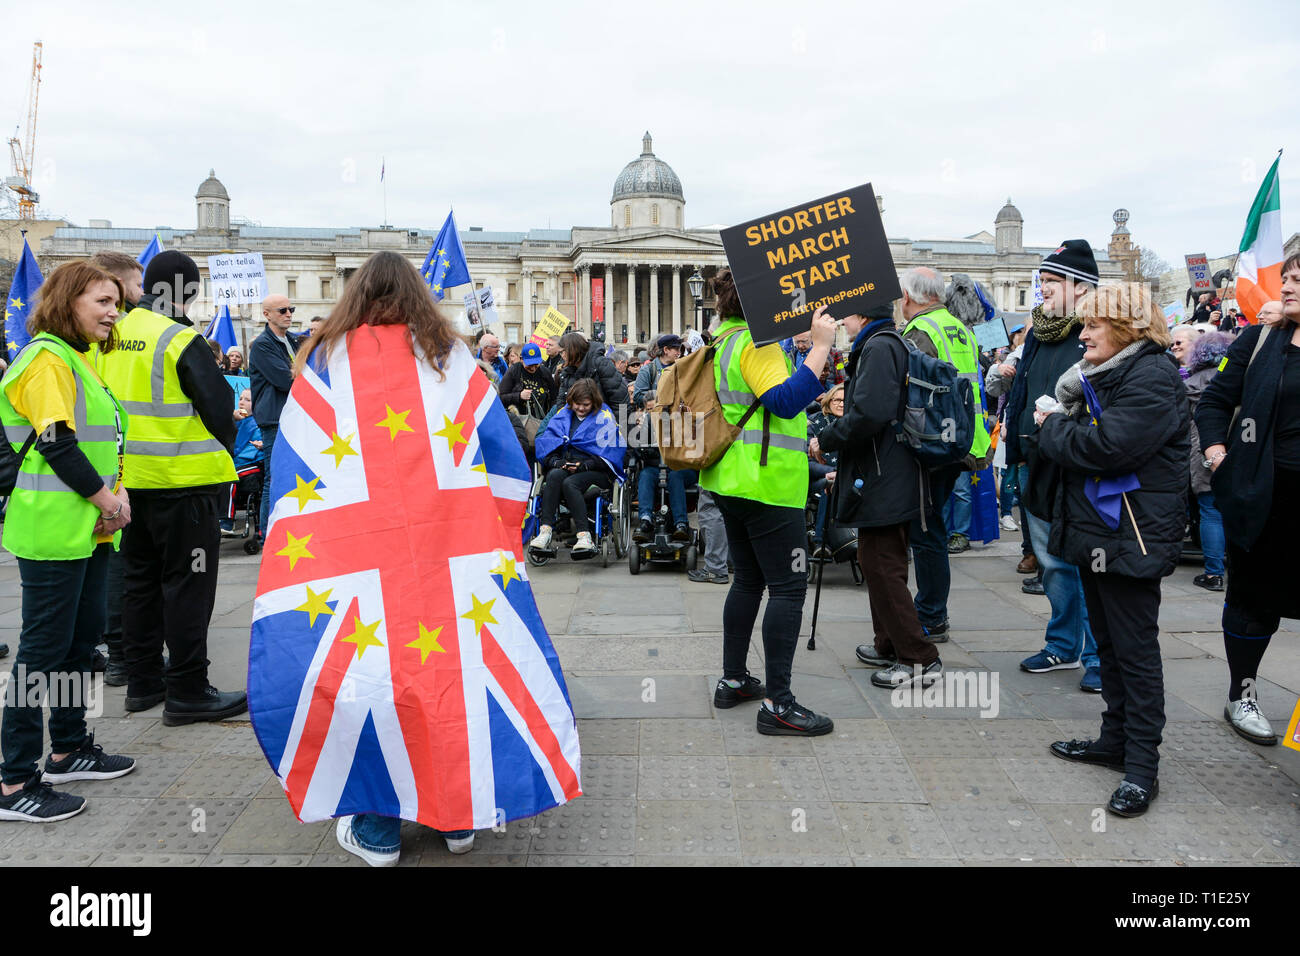 London, England, UK. 23 March 2019.  People's Vote March in Trafalgar Square, London, UK - Stock Image